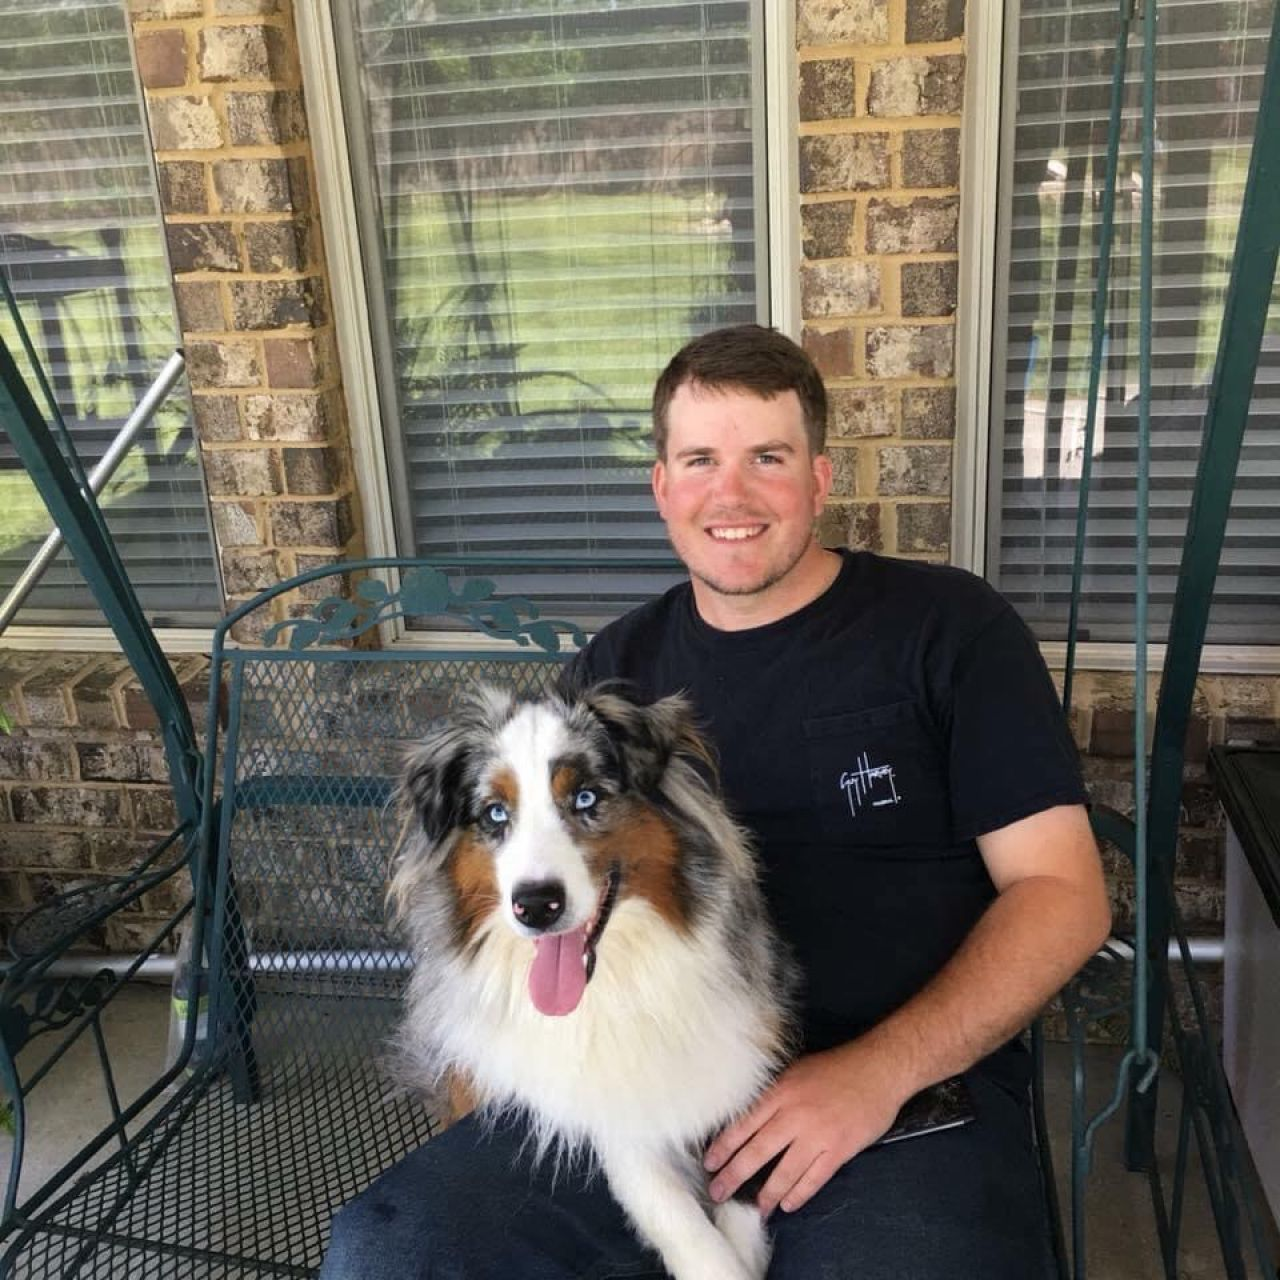 Chris Teem today with pet Australian Shepherd